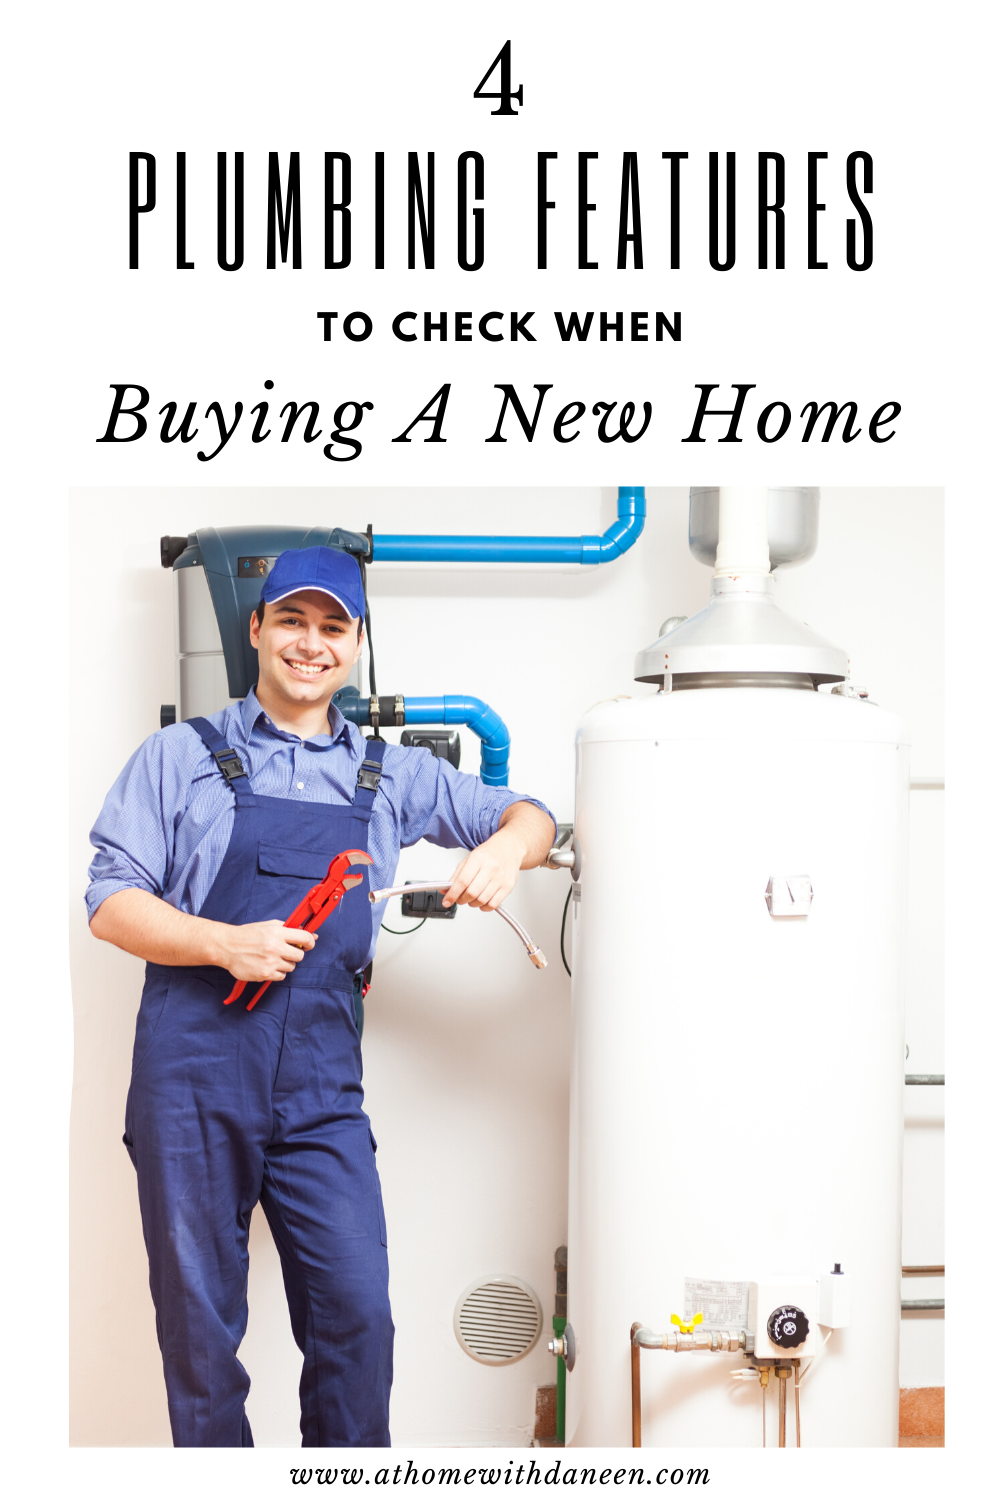 If you're in the market for a new home, then you know how important it is to review its mechanicals like electrical and plumbing.  These are four plumbing features that you should check when buying a new home. 💦🛁🚿🚽 #plumbing #plumbingproblems #plumbingissues #realestate #realtor #homebuying #homesweethome #homebuyer #waterdamage  #newhome #firsttimehomebuyer #househunting #dreamhome